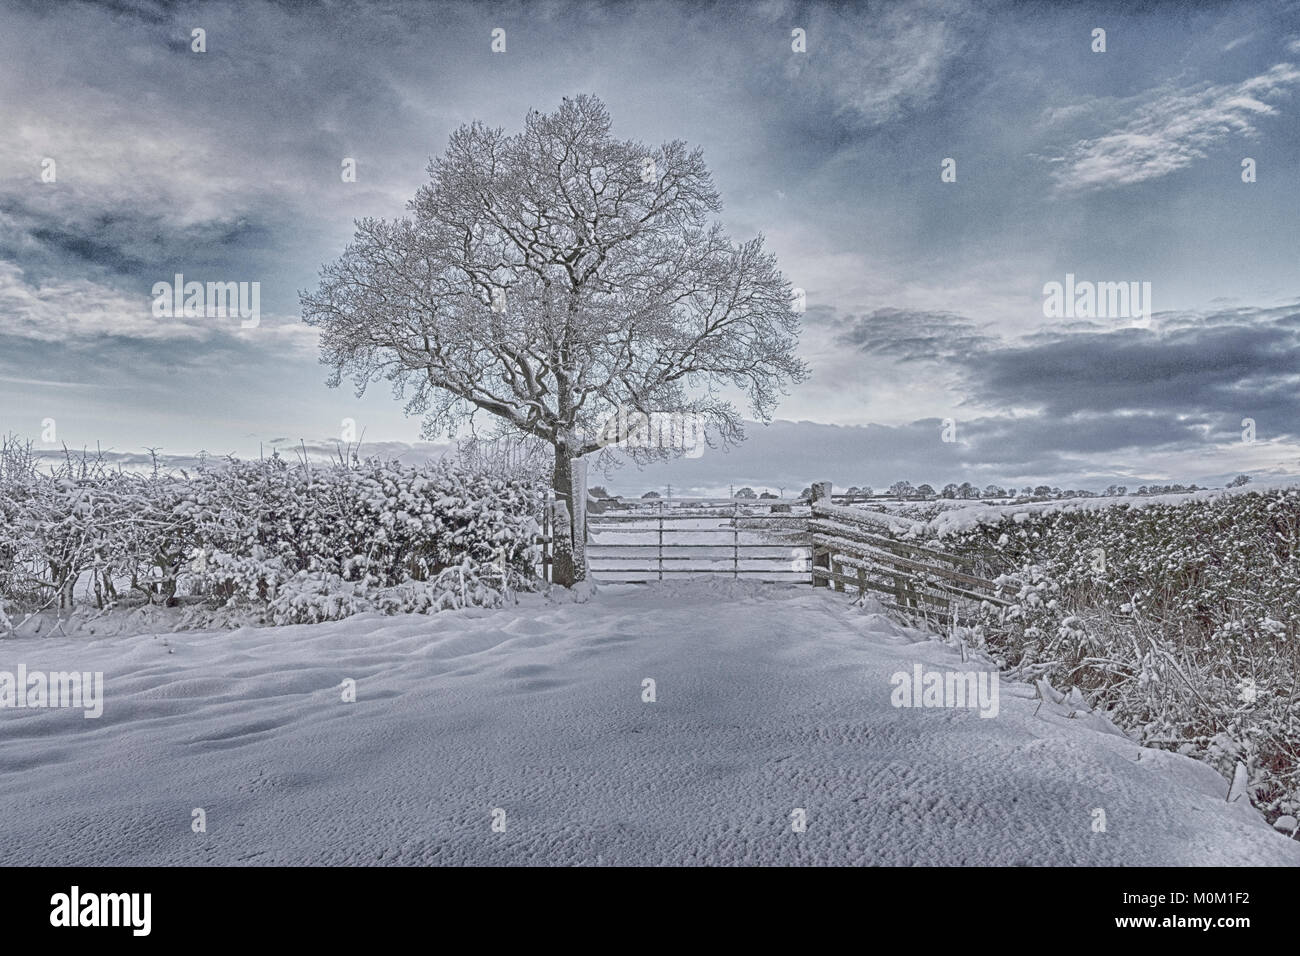 After a heavy snowfall in County Durham the fields and the surrounding countryside are covered in a heavy blanket - Stock Image